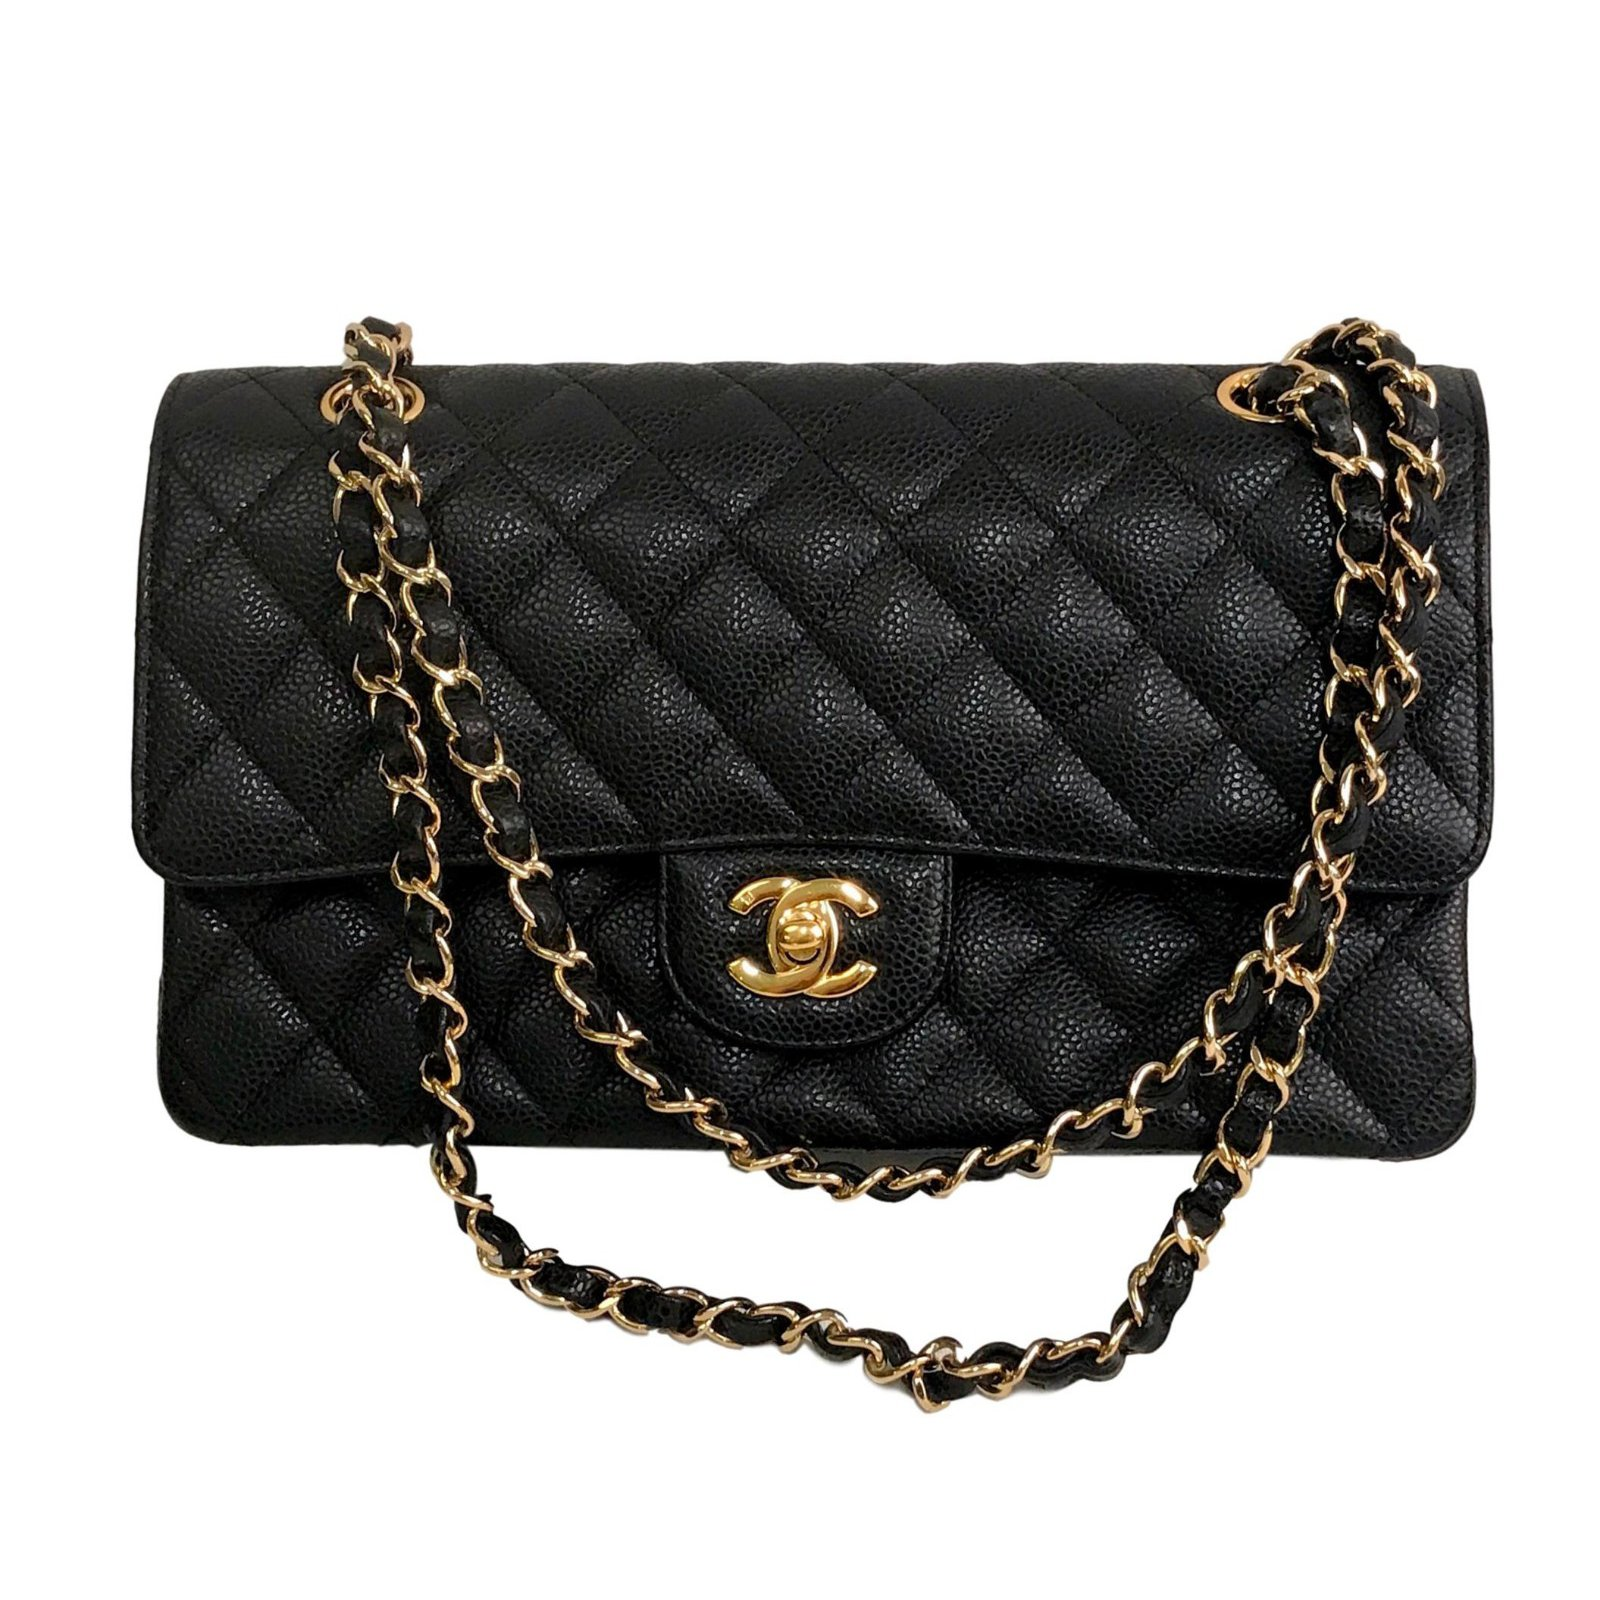 3831881eb1ec Chanel caviar lined flap medium bag Handbags Leather Black ref.76707 ...